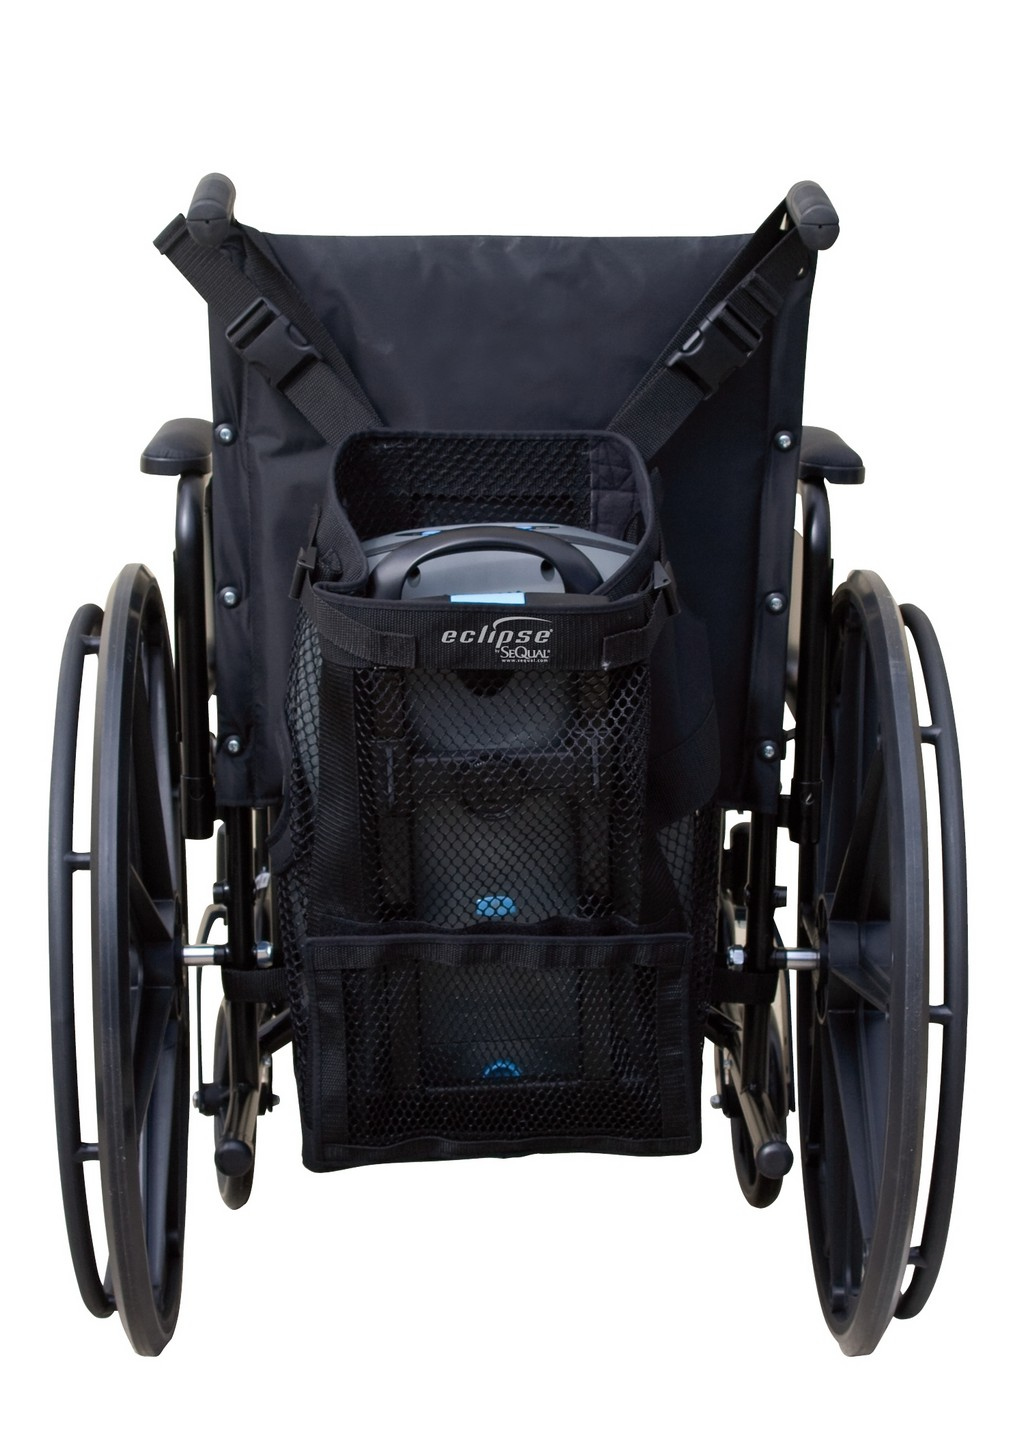 wheelchair umbrella fold, jazzy wheelchair accessories, jay 2 wheelchair cushion air moisture vents, alante wheelchair tires